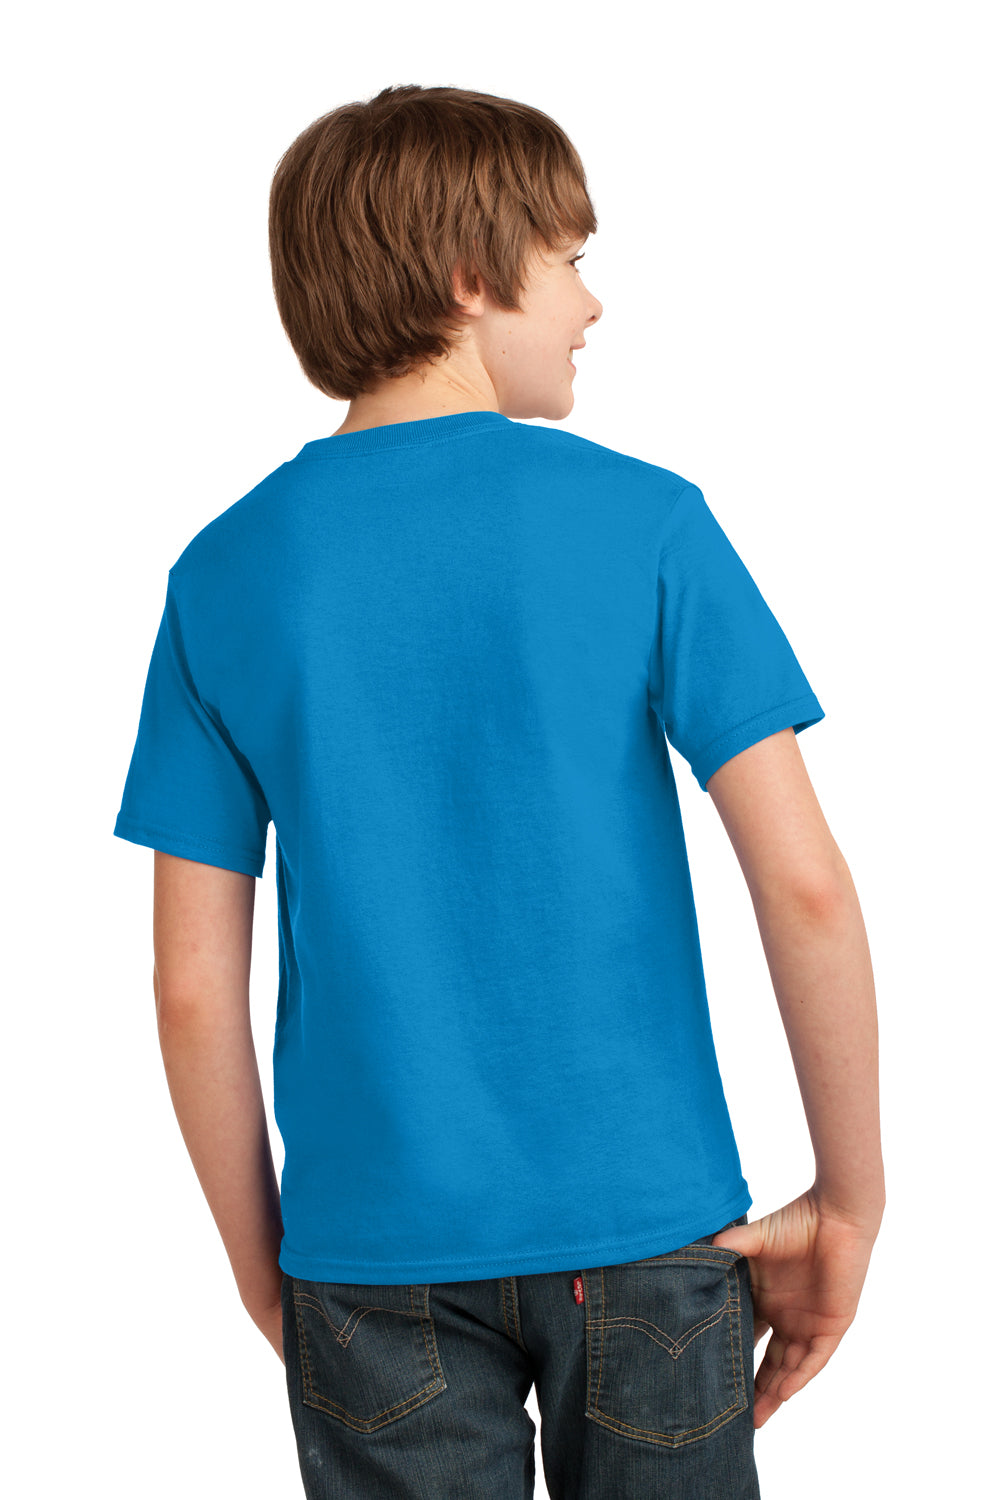 Port & Company PC61Y Youth Essential Short Sleeve Crewneck T-Shirt Sapphire Blue Back